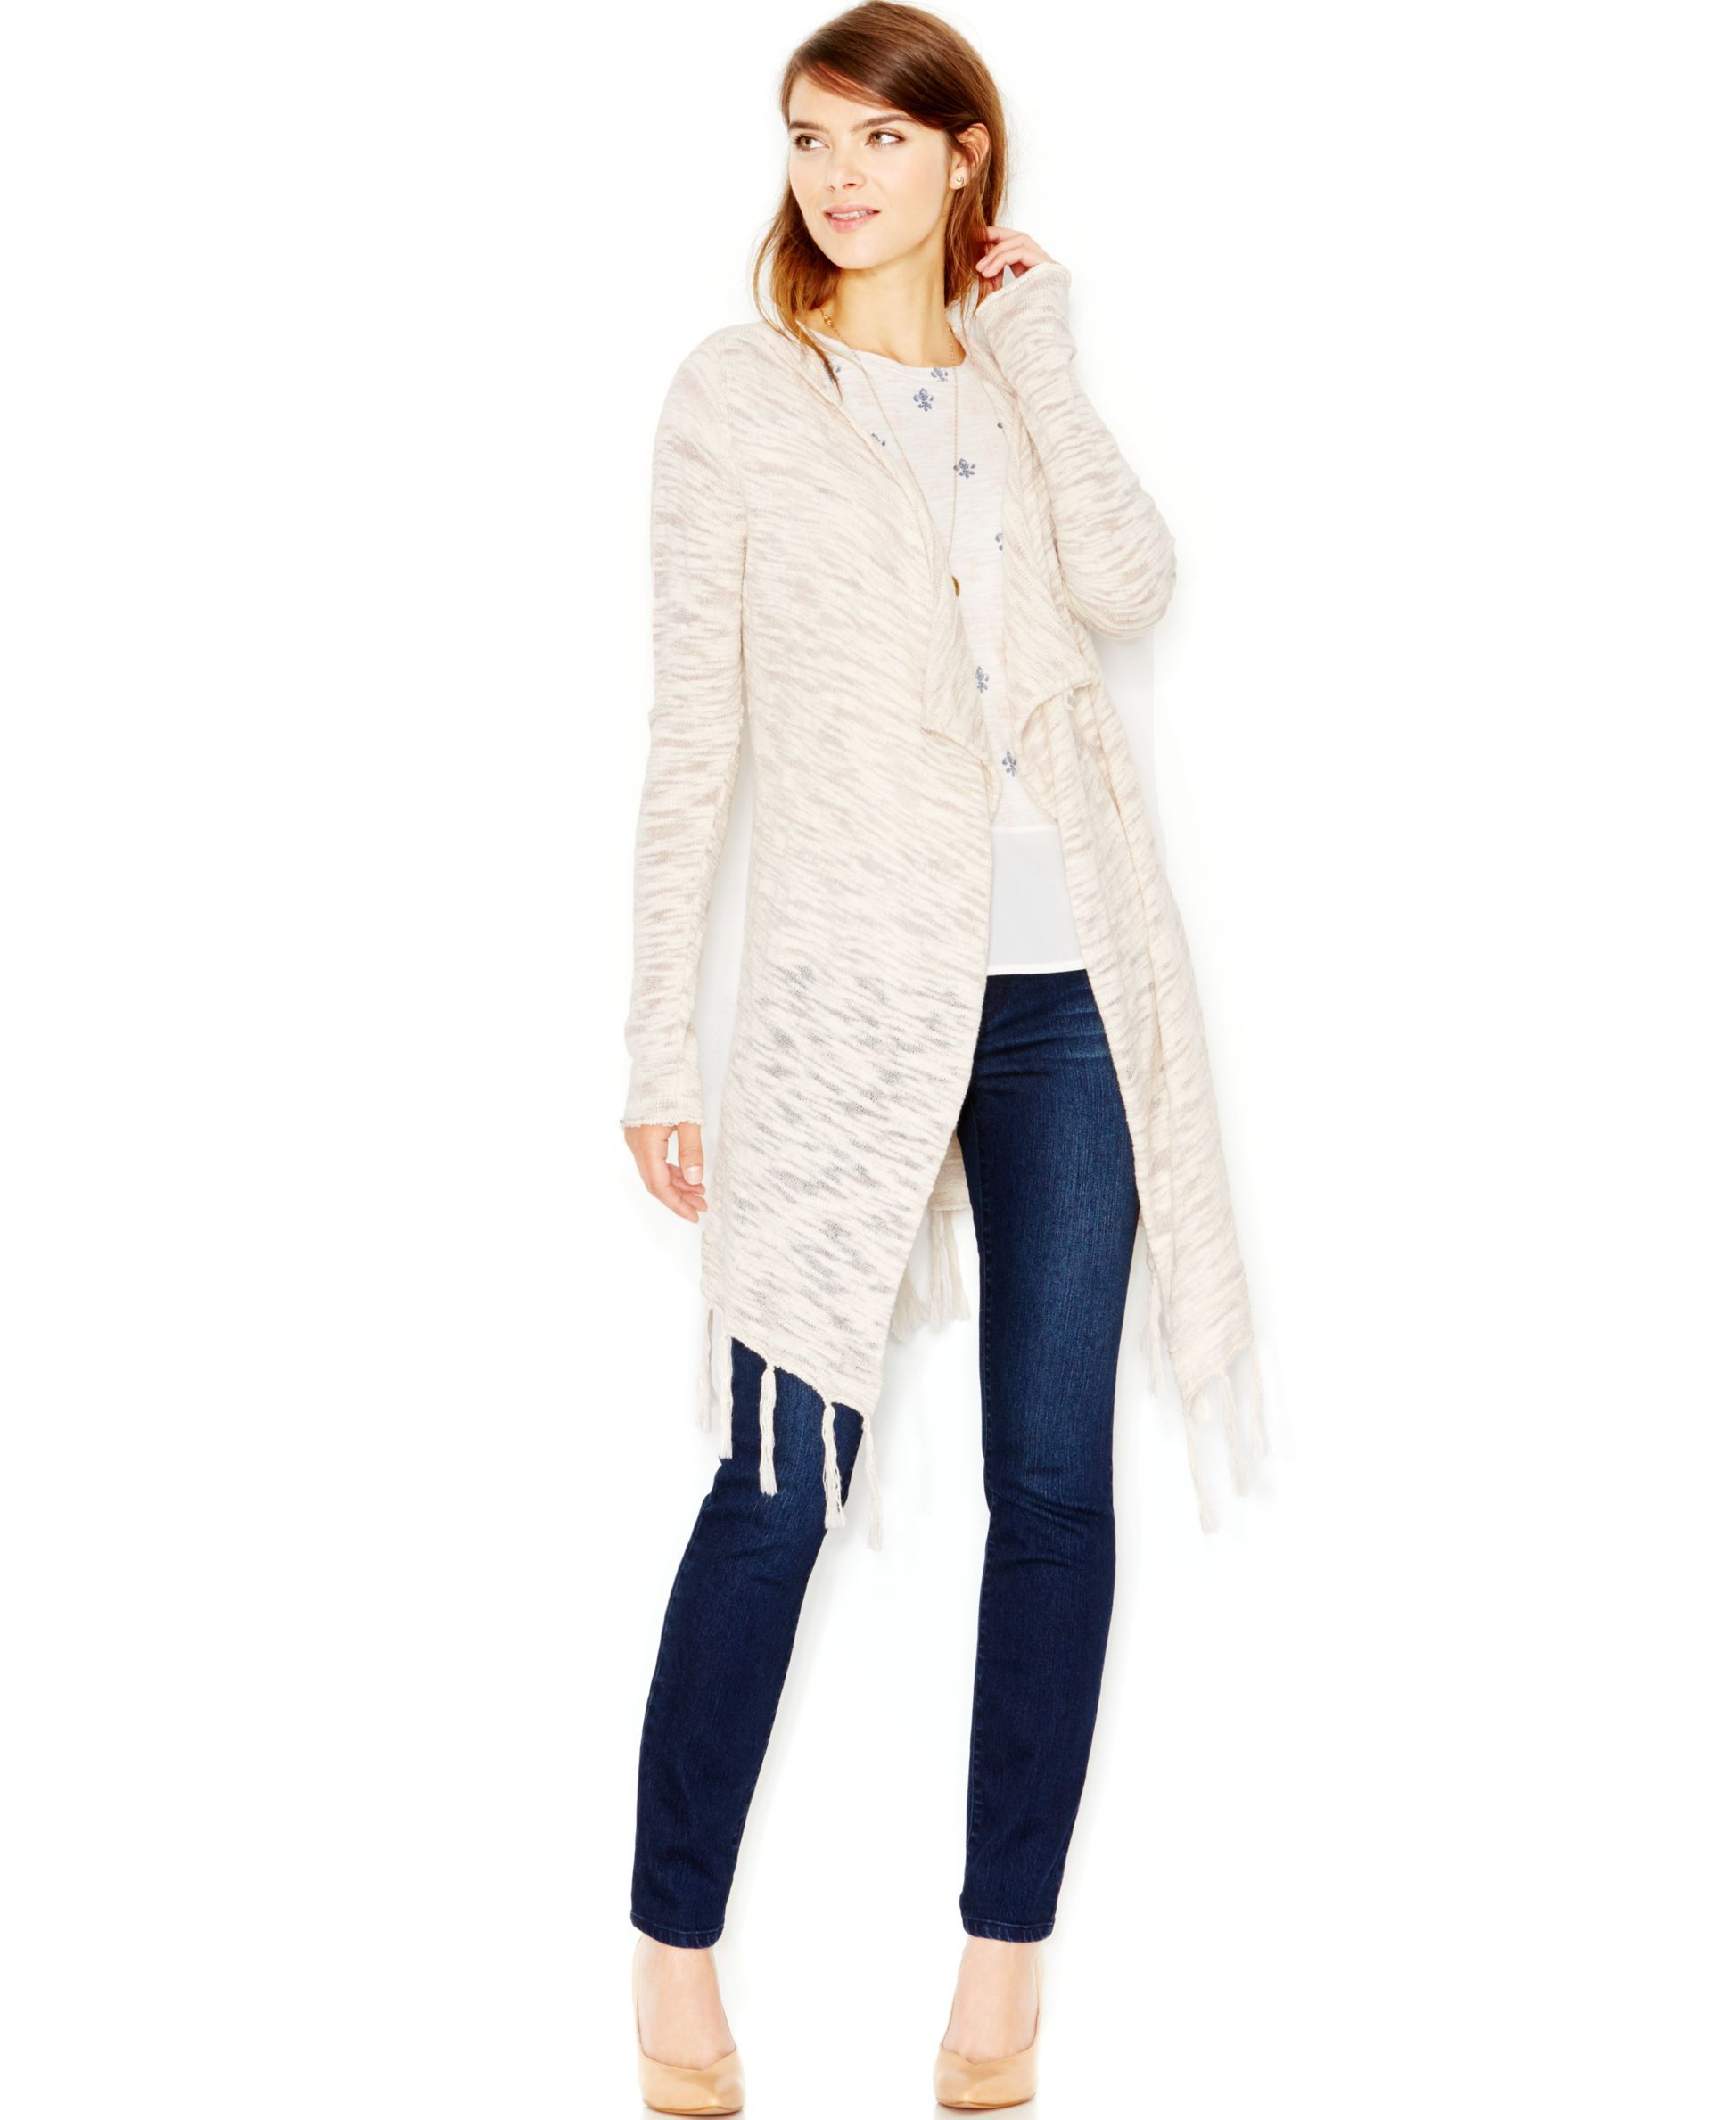 Maison Jules Hooded Fringe Cardigan, Only at Macy's | Products ...